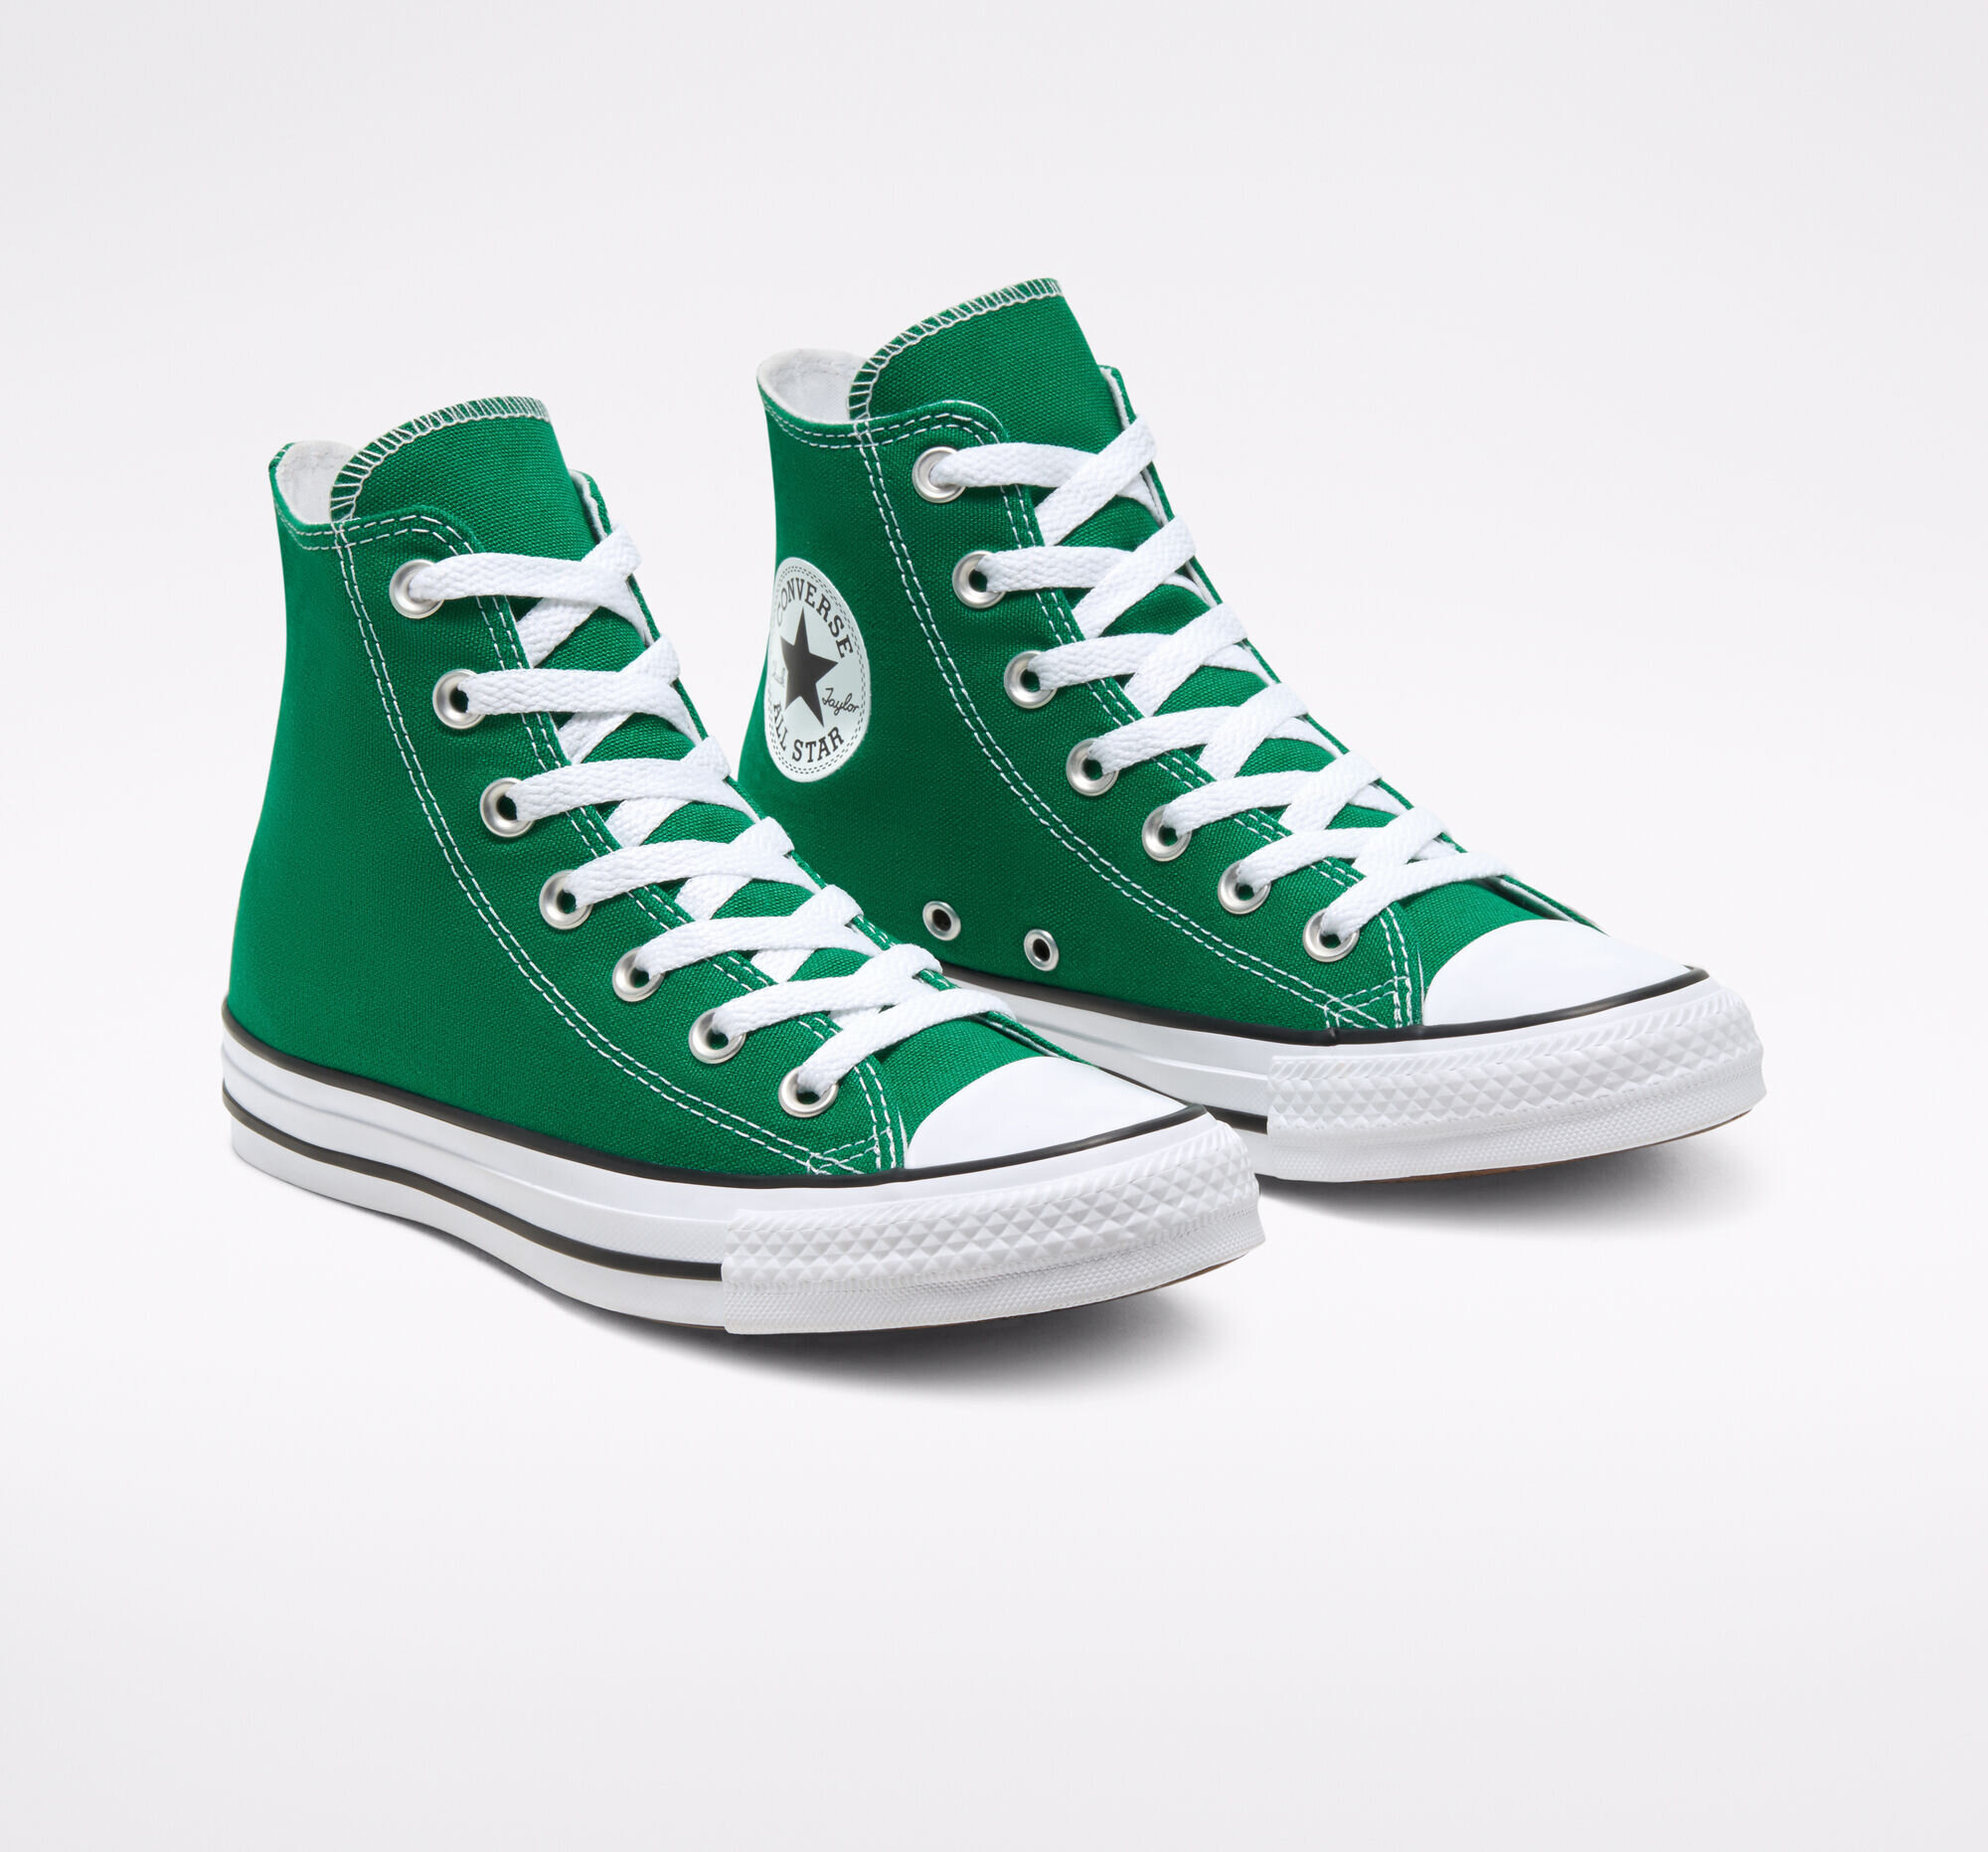 Predecesor Mecánicamente Distante  Men's Guide to Converse: Which Style is Right for You? — Men's Fashion  Advice & Style Tips 2021 | Menswear Mag